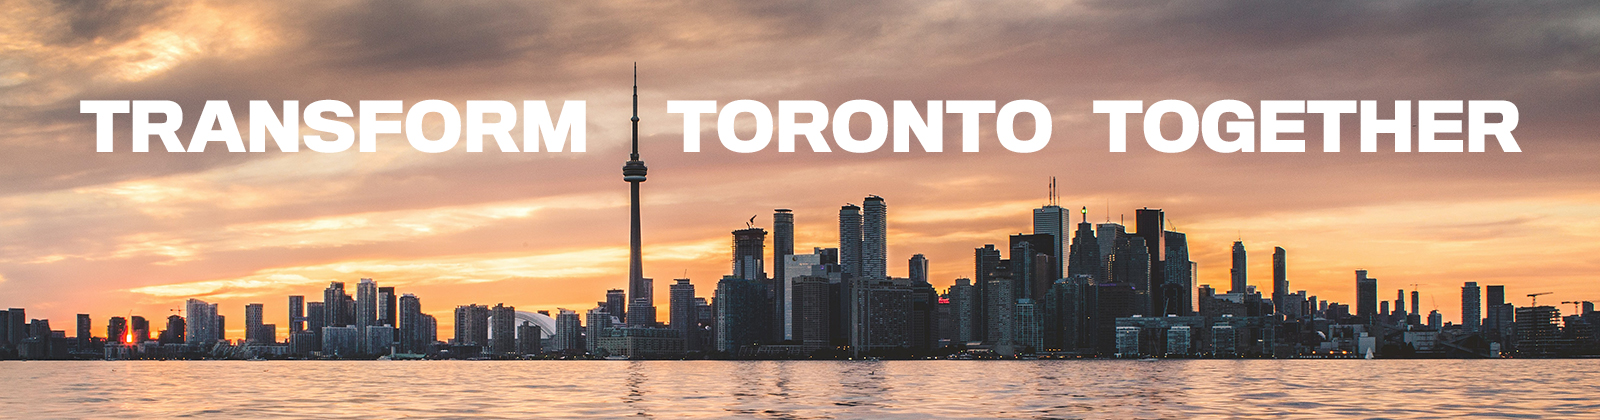 Transform Toronto Together Skyline